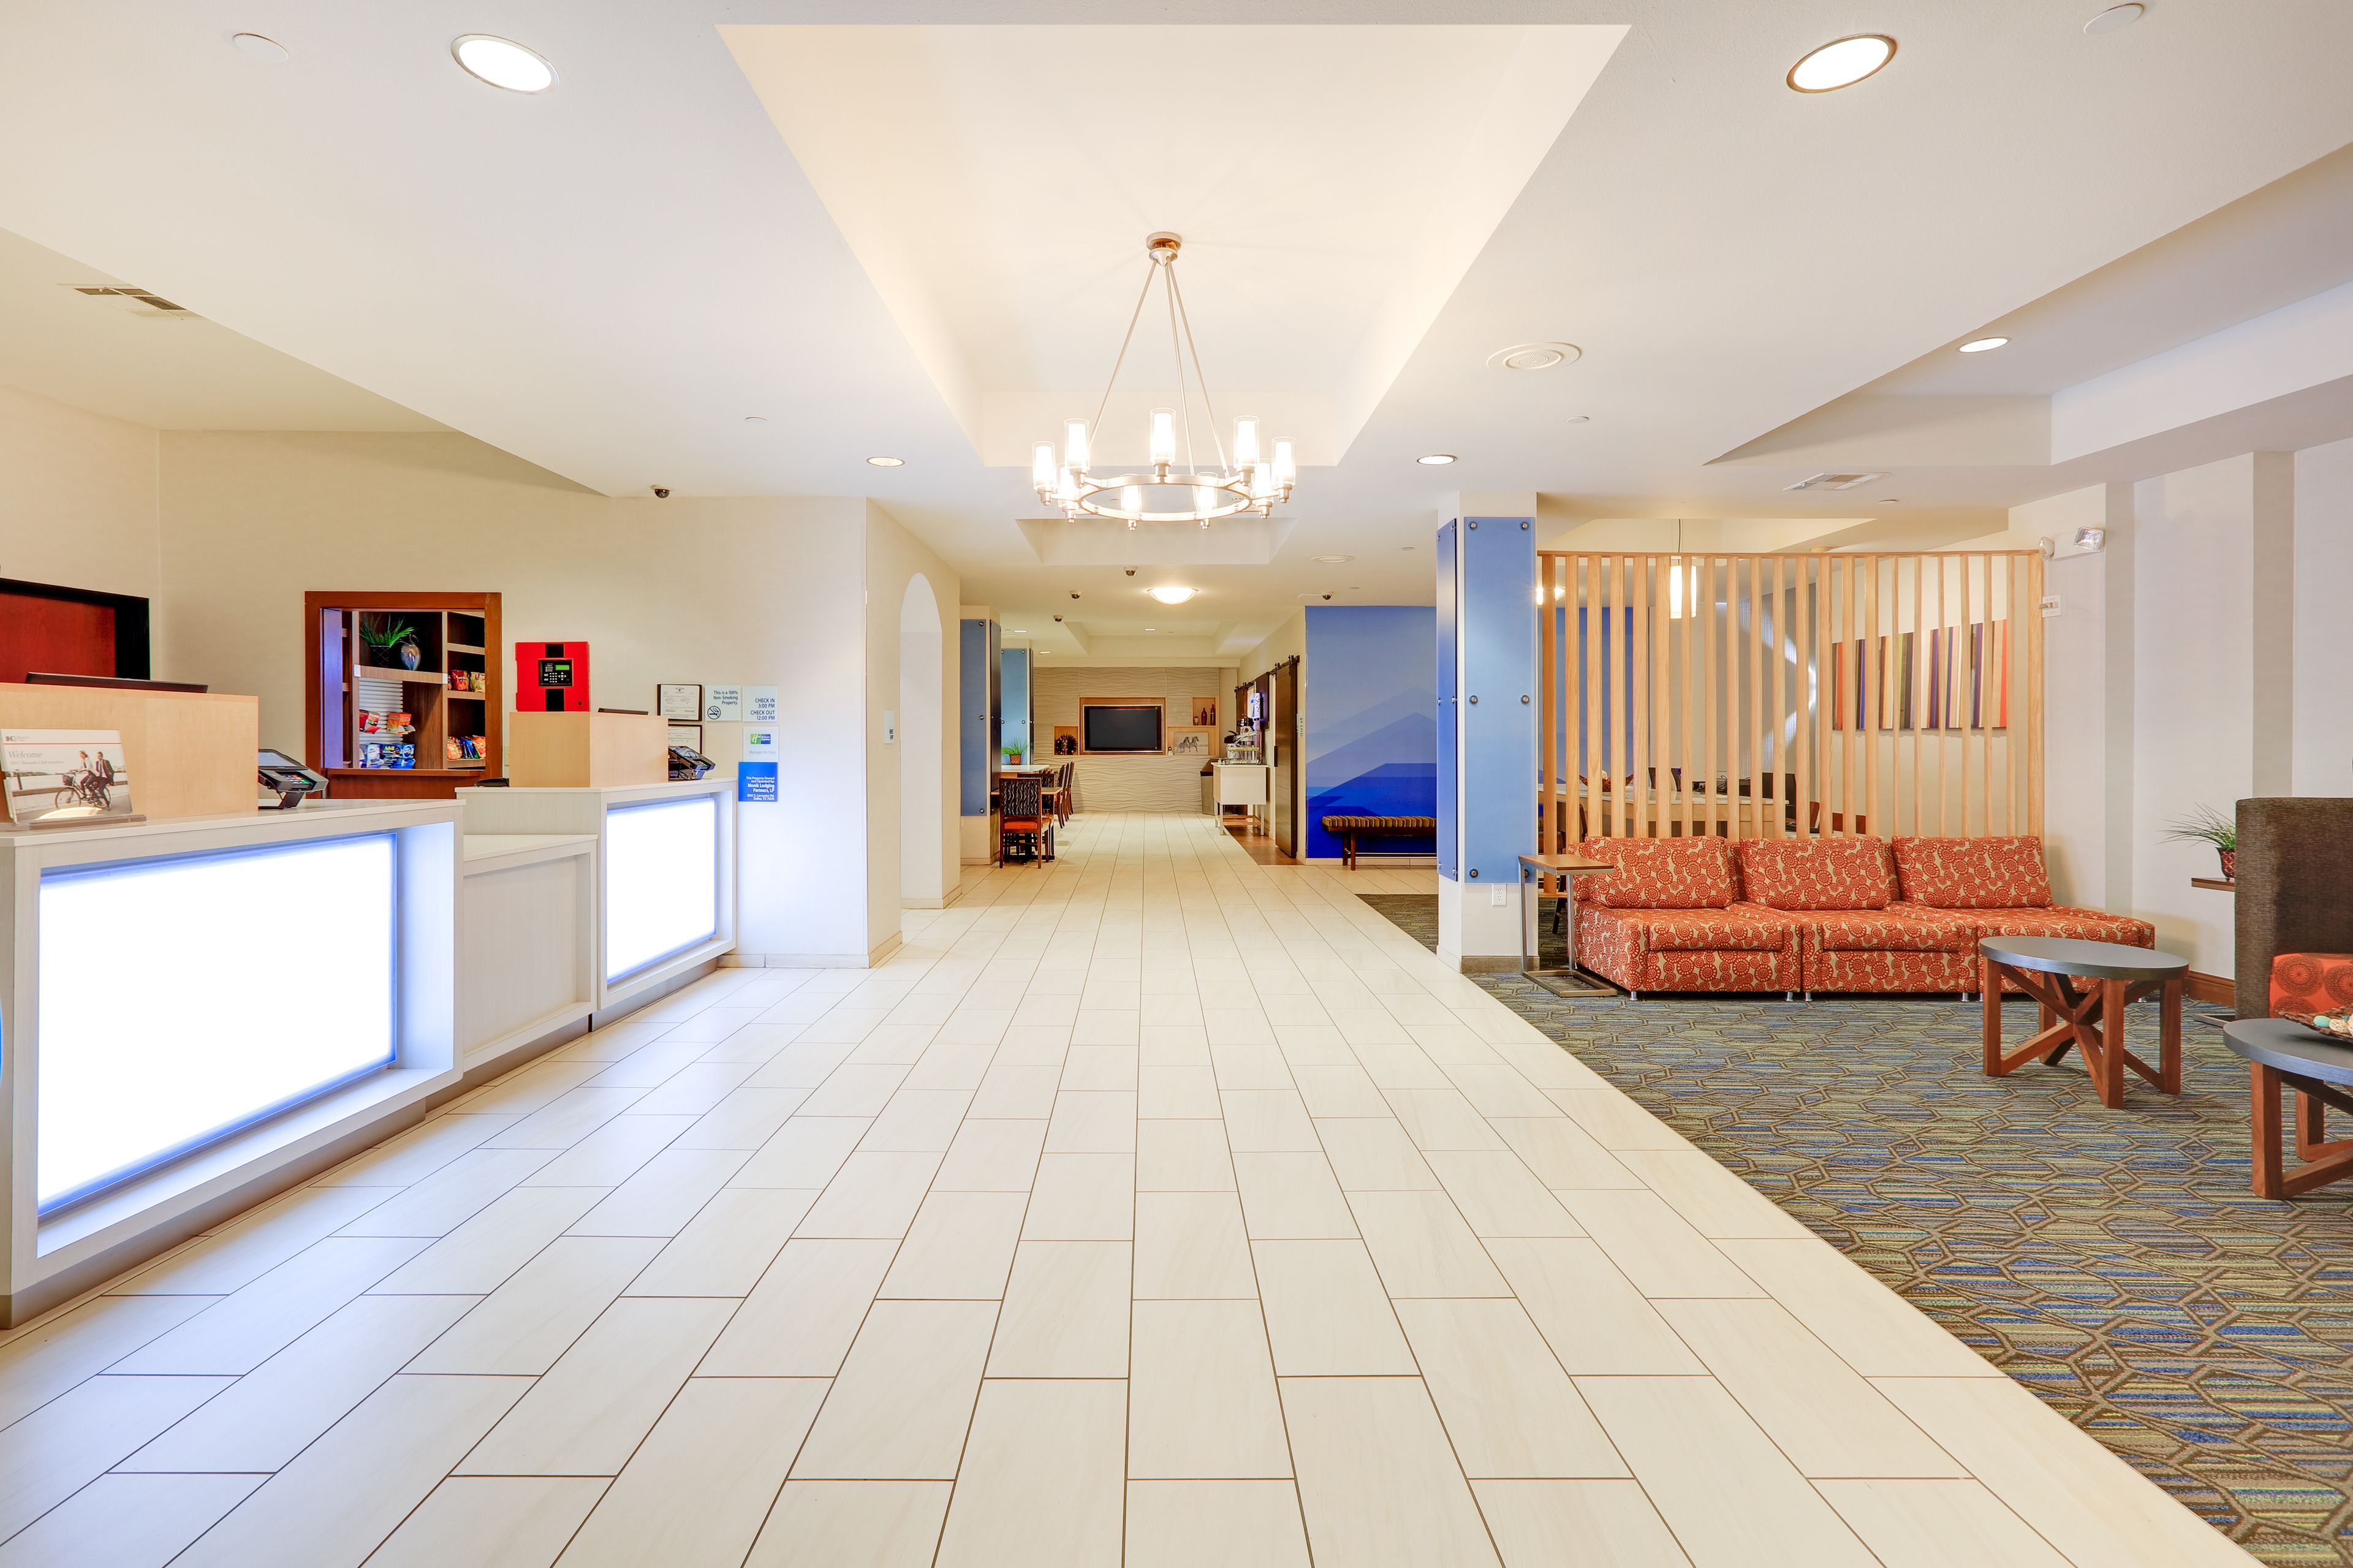 Holiday Inn Express & Suites Burleson/Ft. Worth image 3